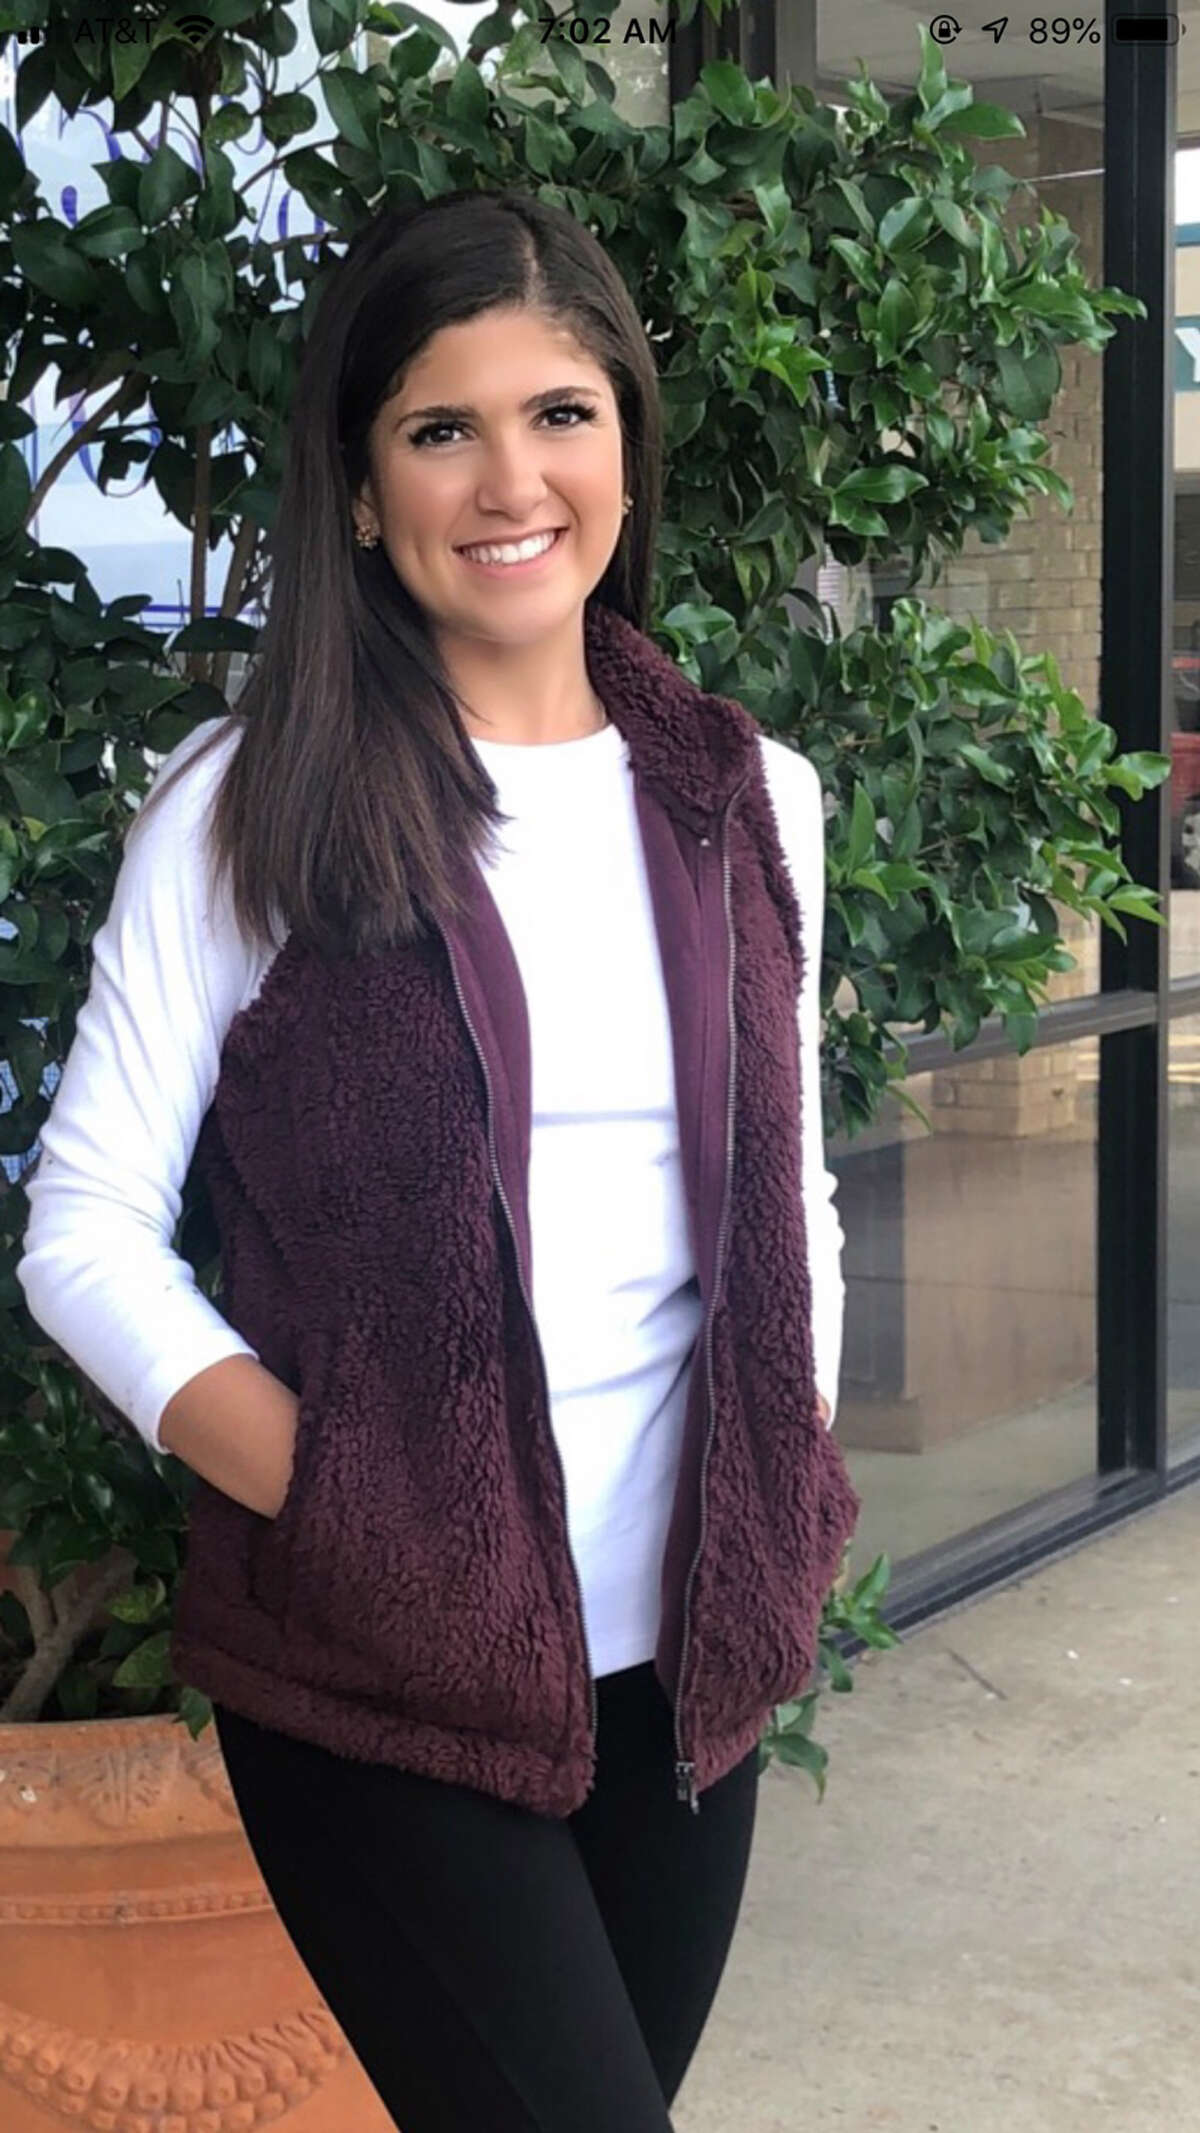 Dylan Polar Fleece Vest by True Grit can be dressed up or down. It's super soft and available in colors such as oatmeal, ice blue, burgundy and black. There's a size for your beloved, and she'll love it at Gingham and Pearls, 4393 Calder Ave.